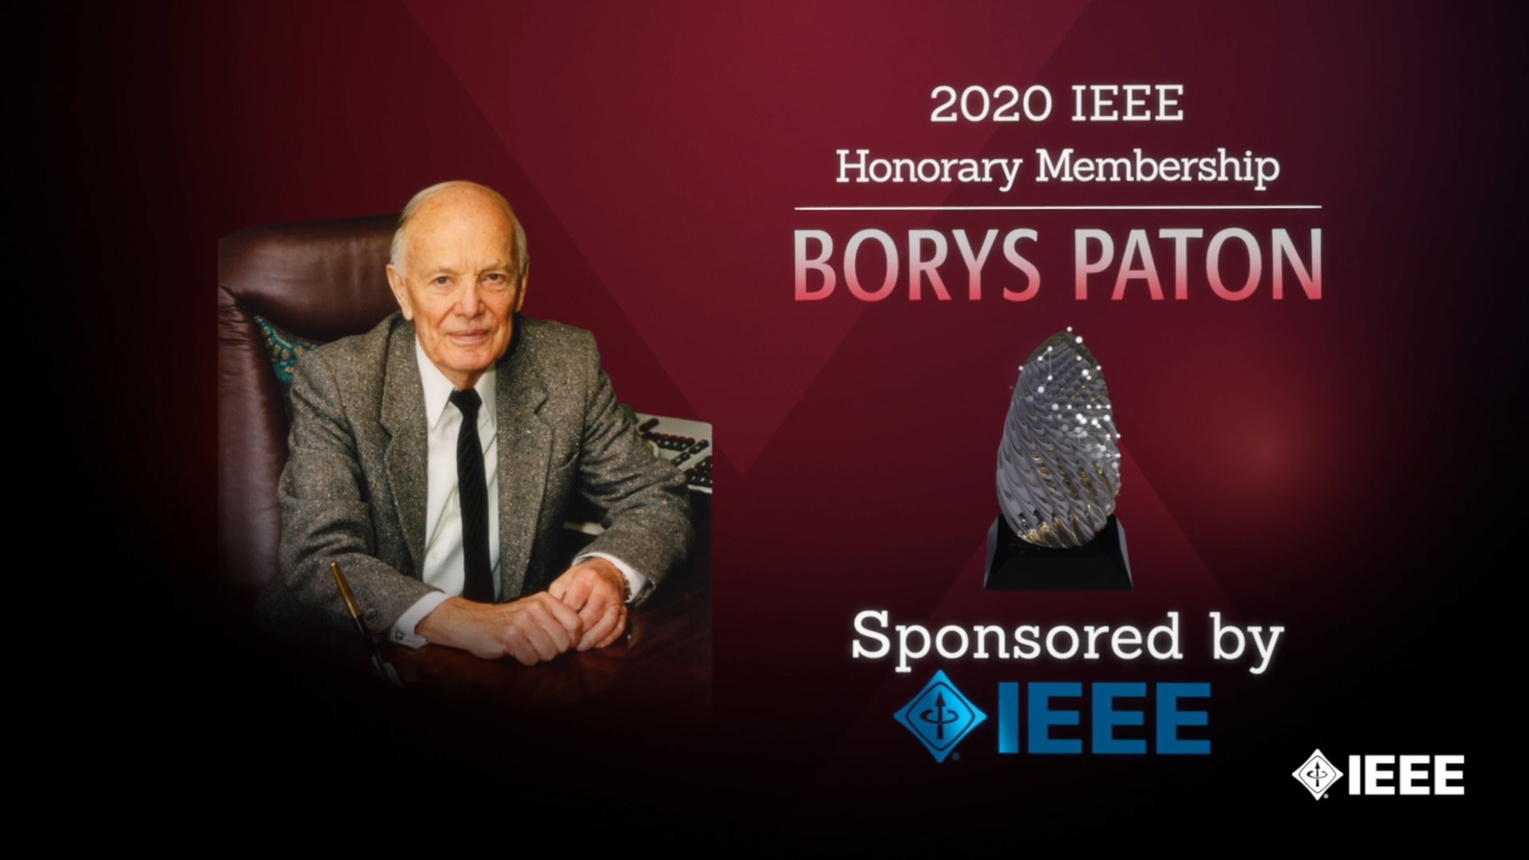 Honors 2020: Borys Paton Wins the IEEE Honorary Membership